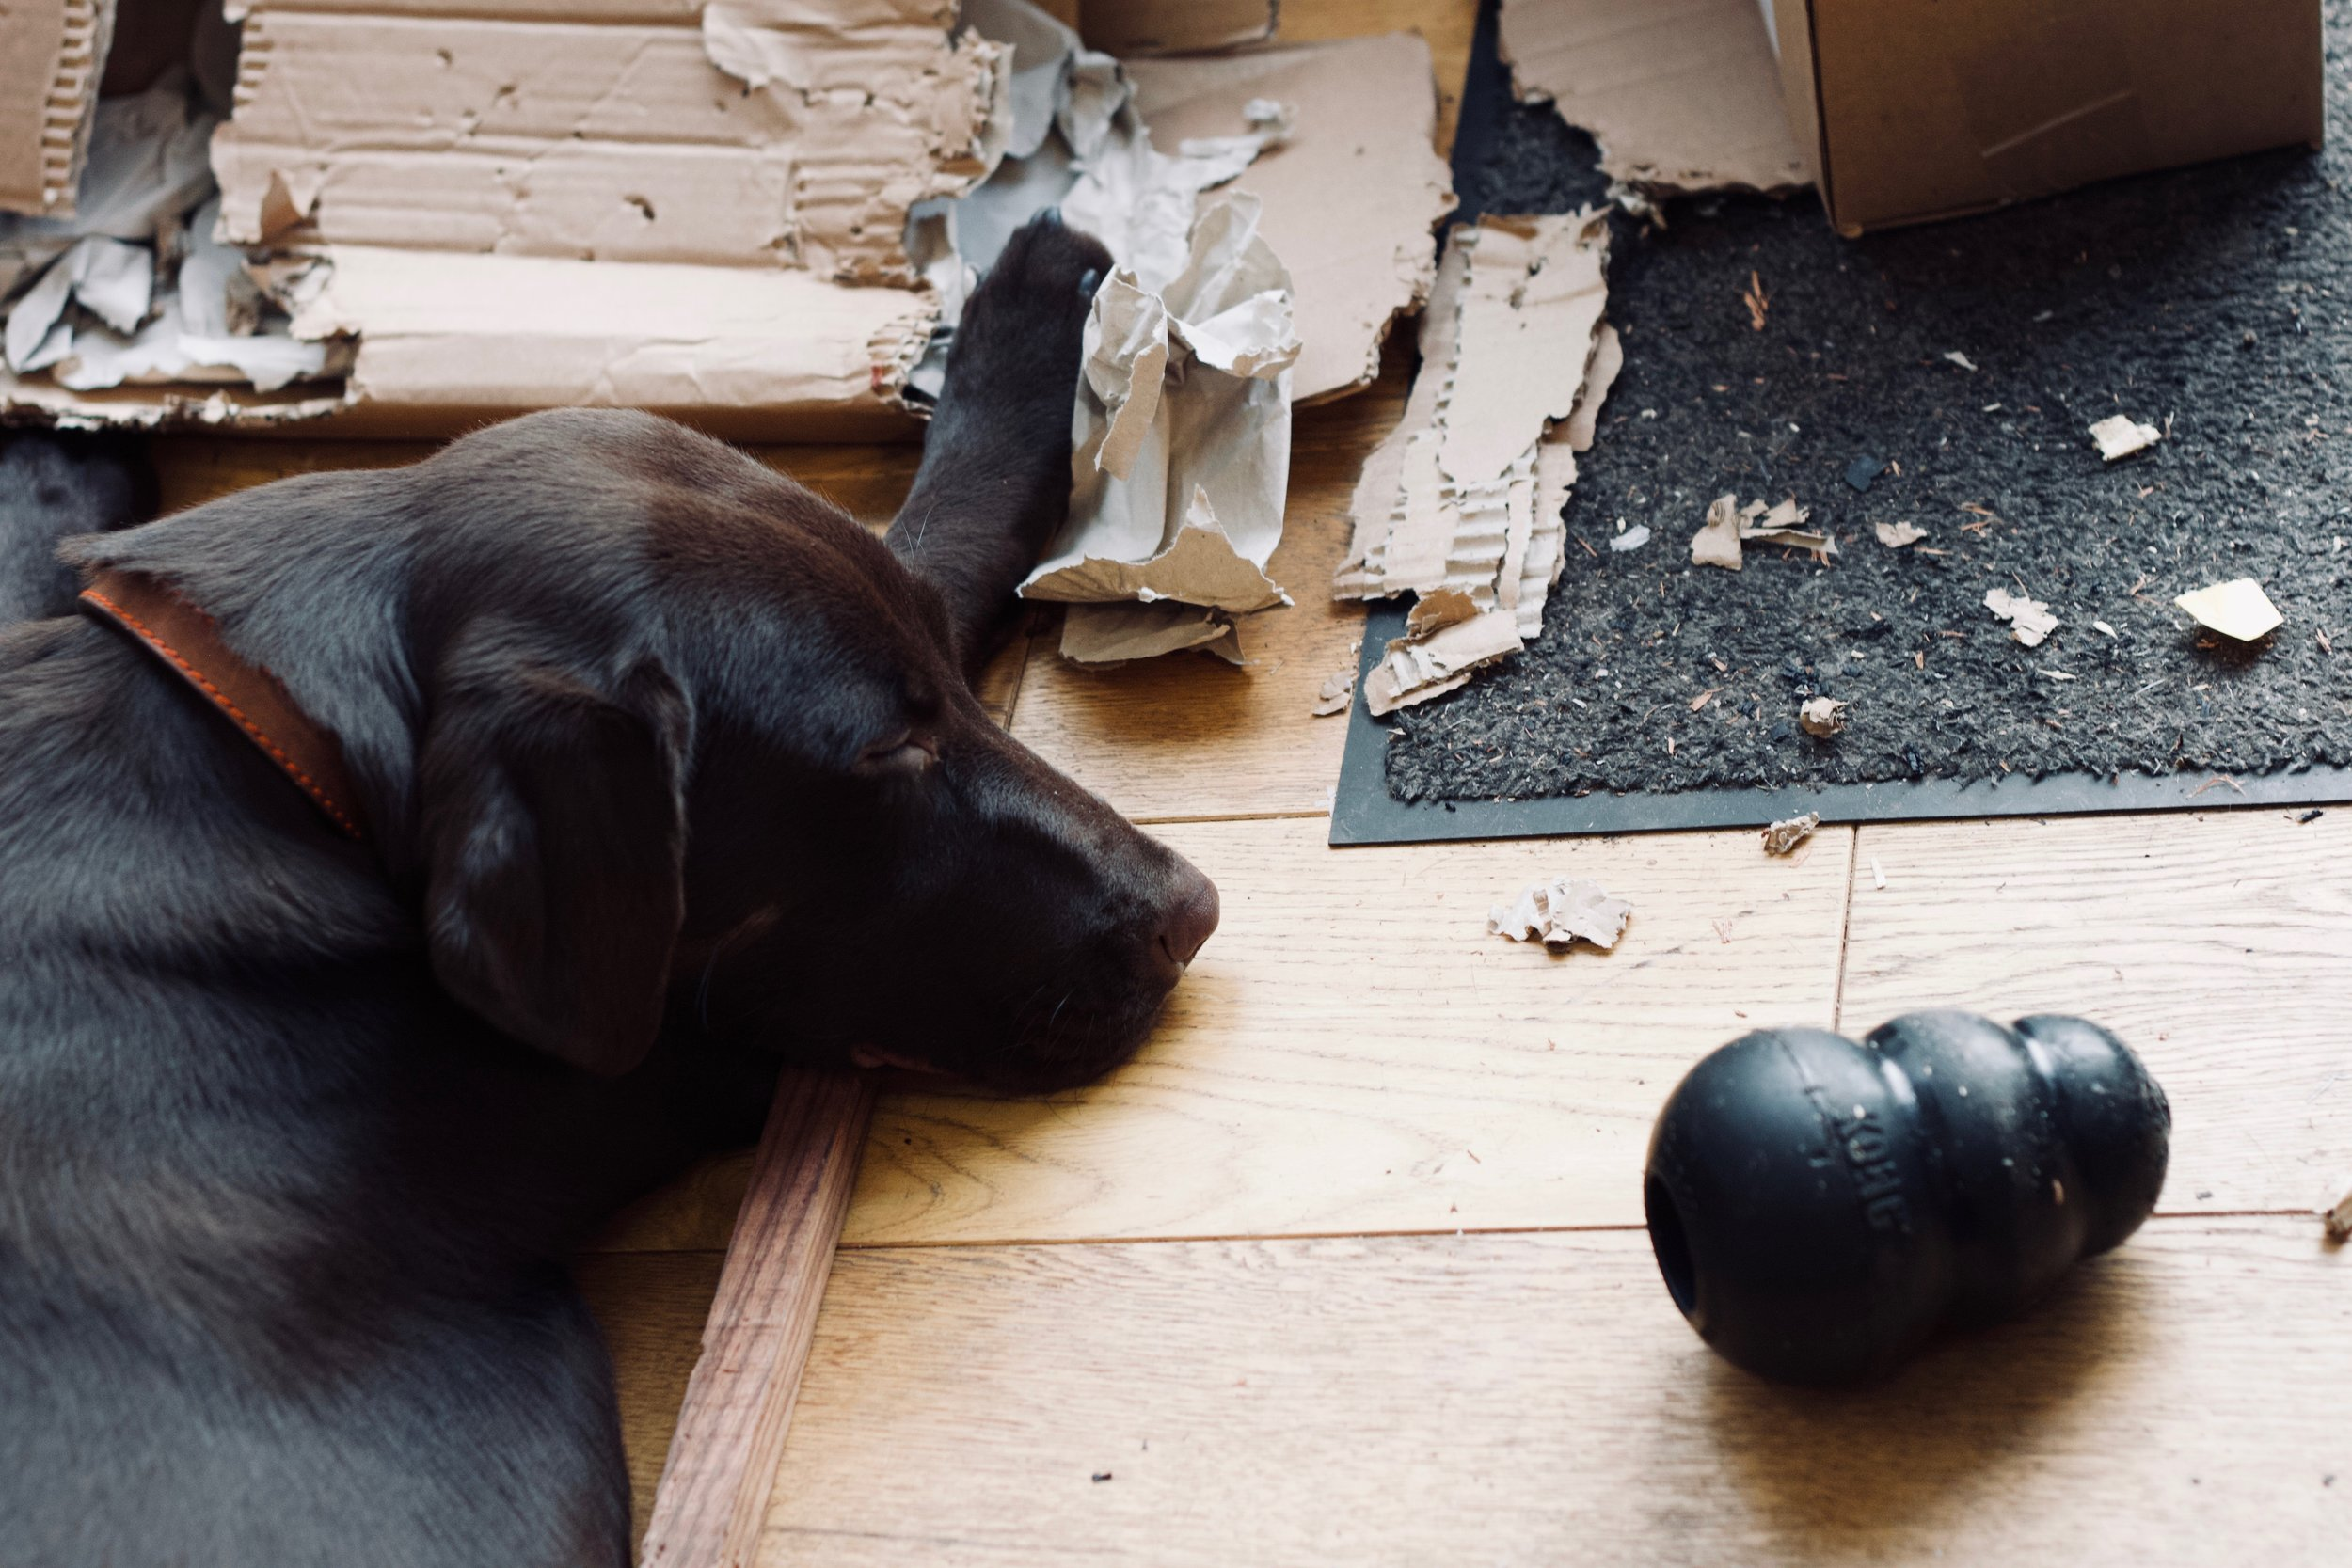 Juno's musings on the validity of Torres's experiments with paper mache